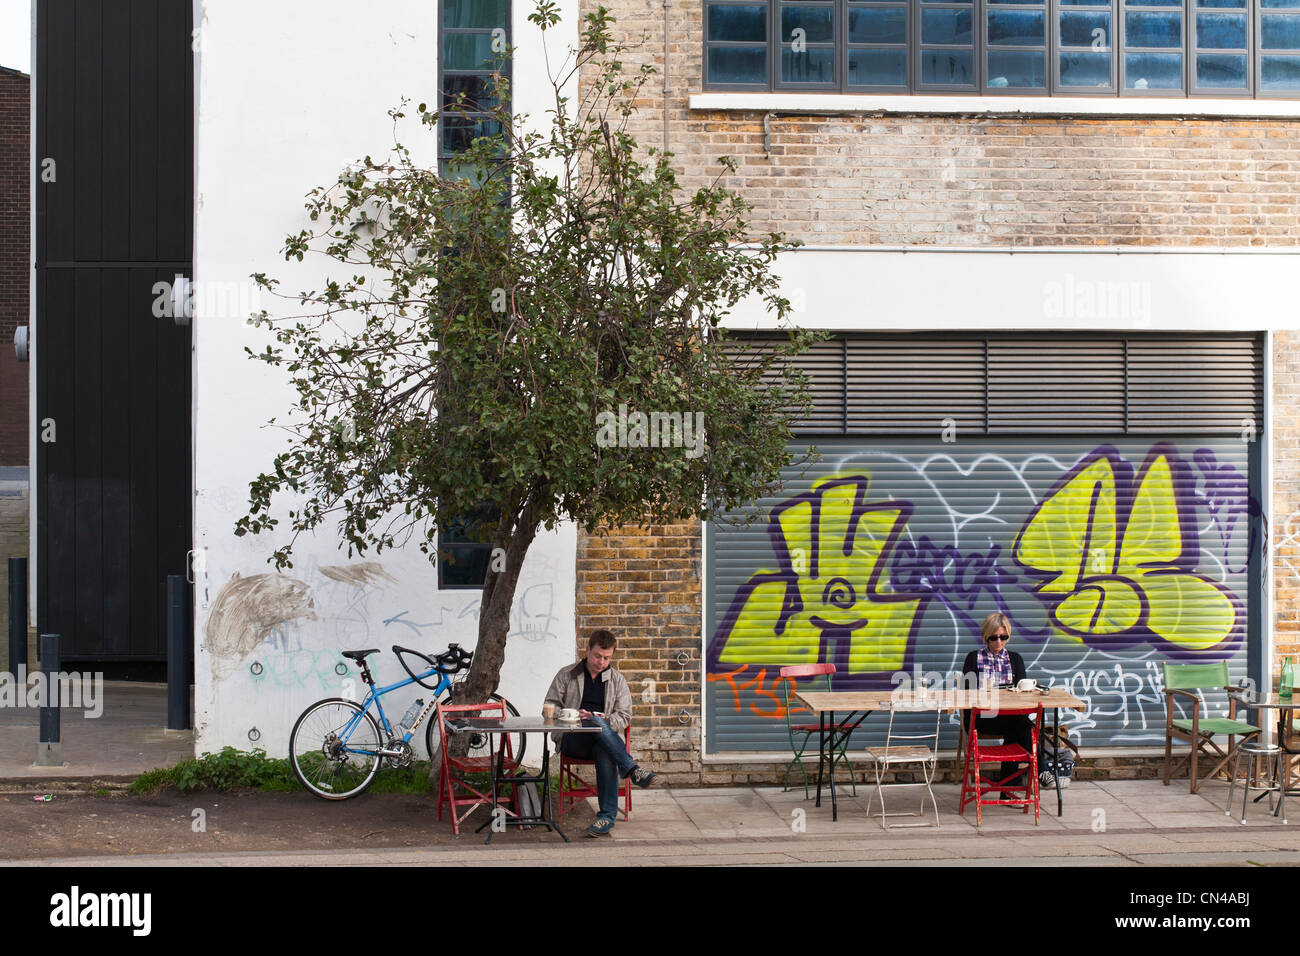 United Kingdom, London, Hackney, Regent's Canal, Towpath cafe open in 2010 by the canal - Stock Image